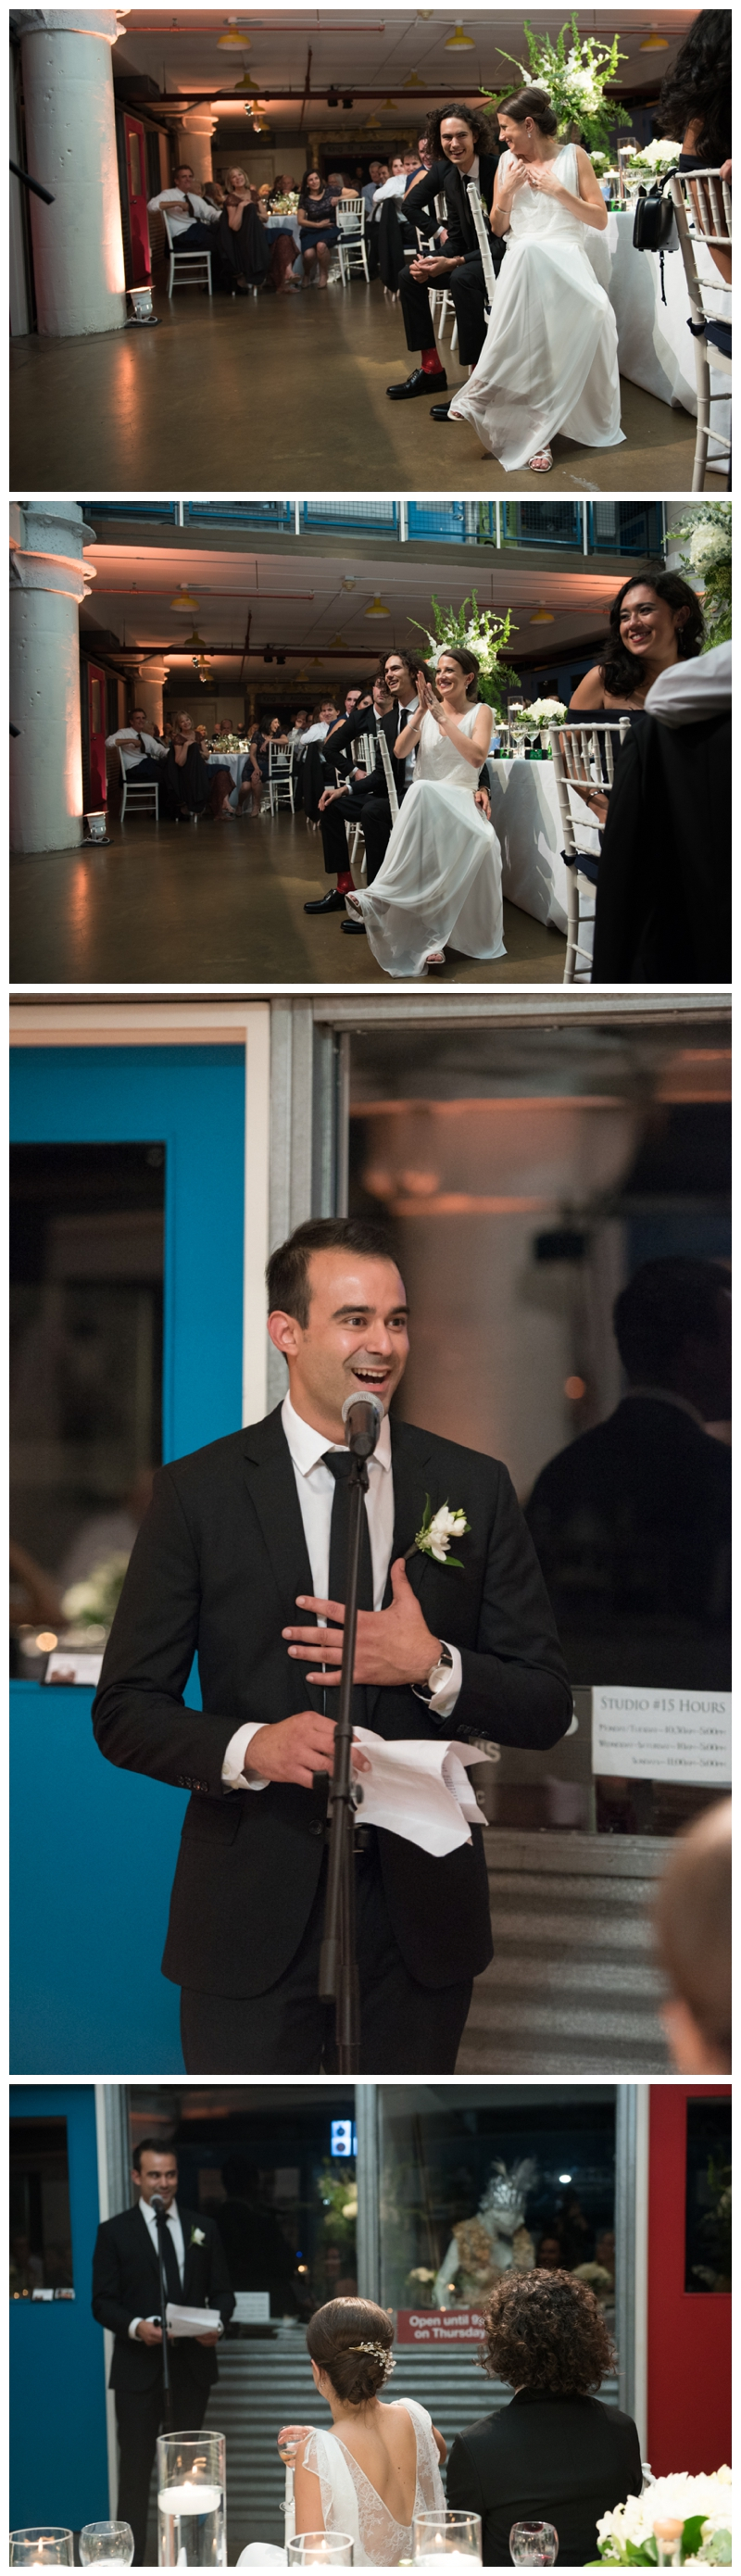 Wedding in Old Town Alexandria Virginia at the Torpedo Factory Art Center by Rachael Foster Photography_0093.jpg